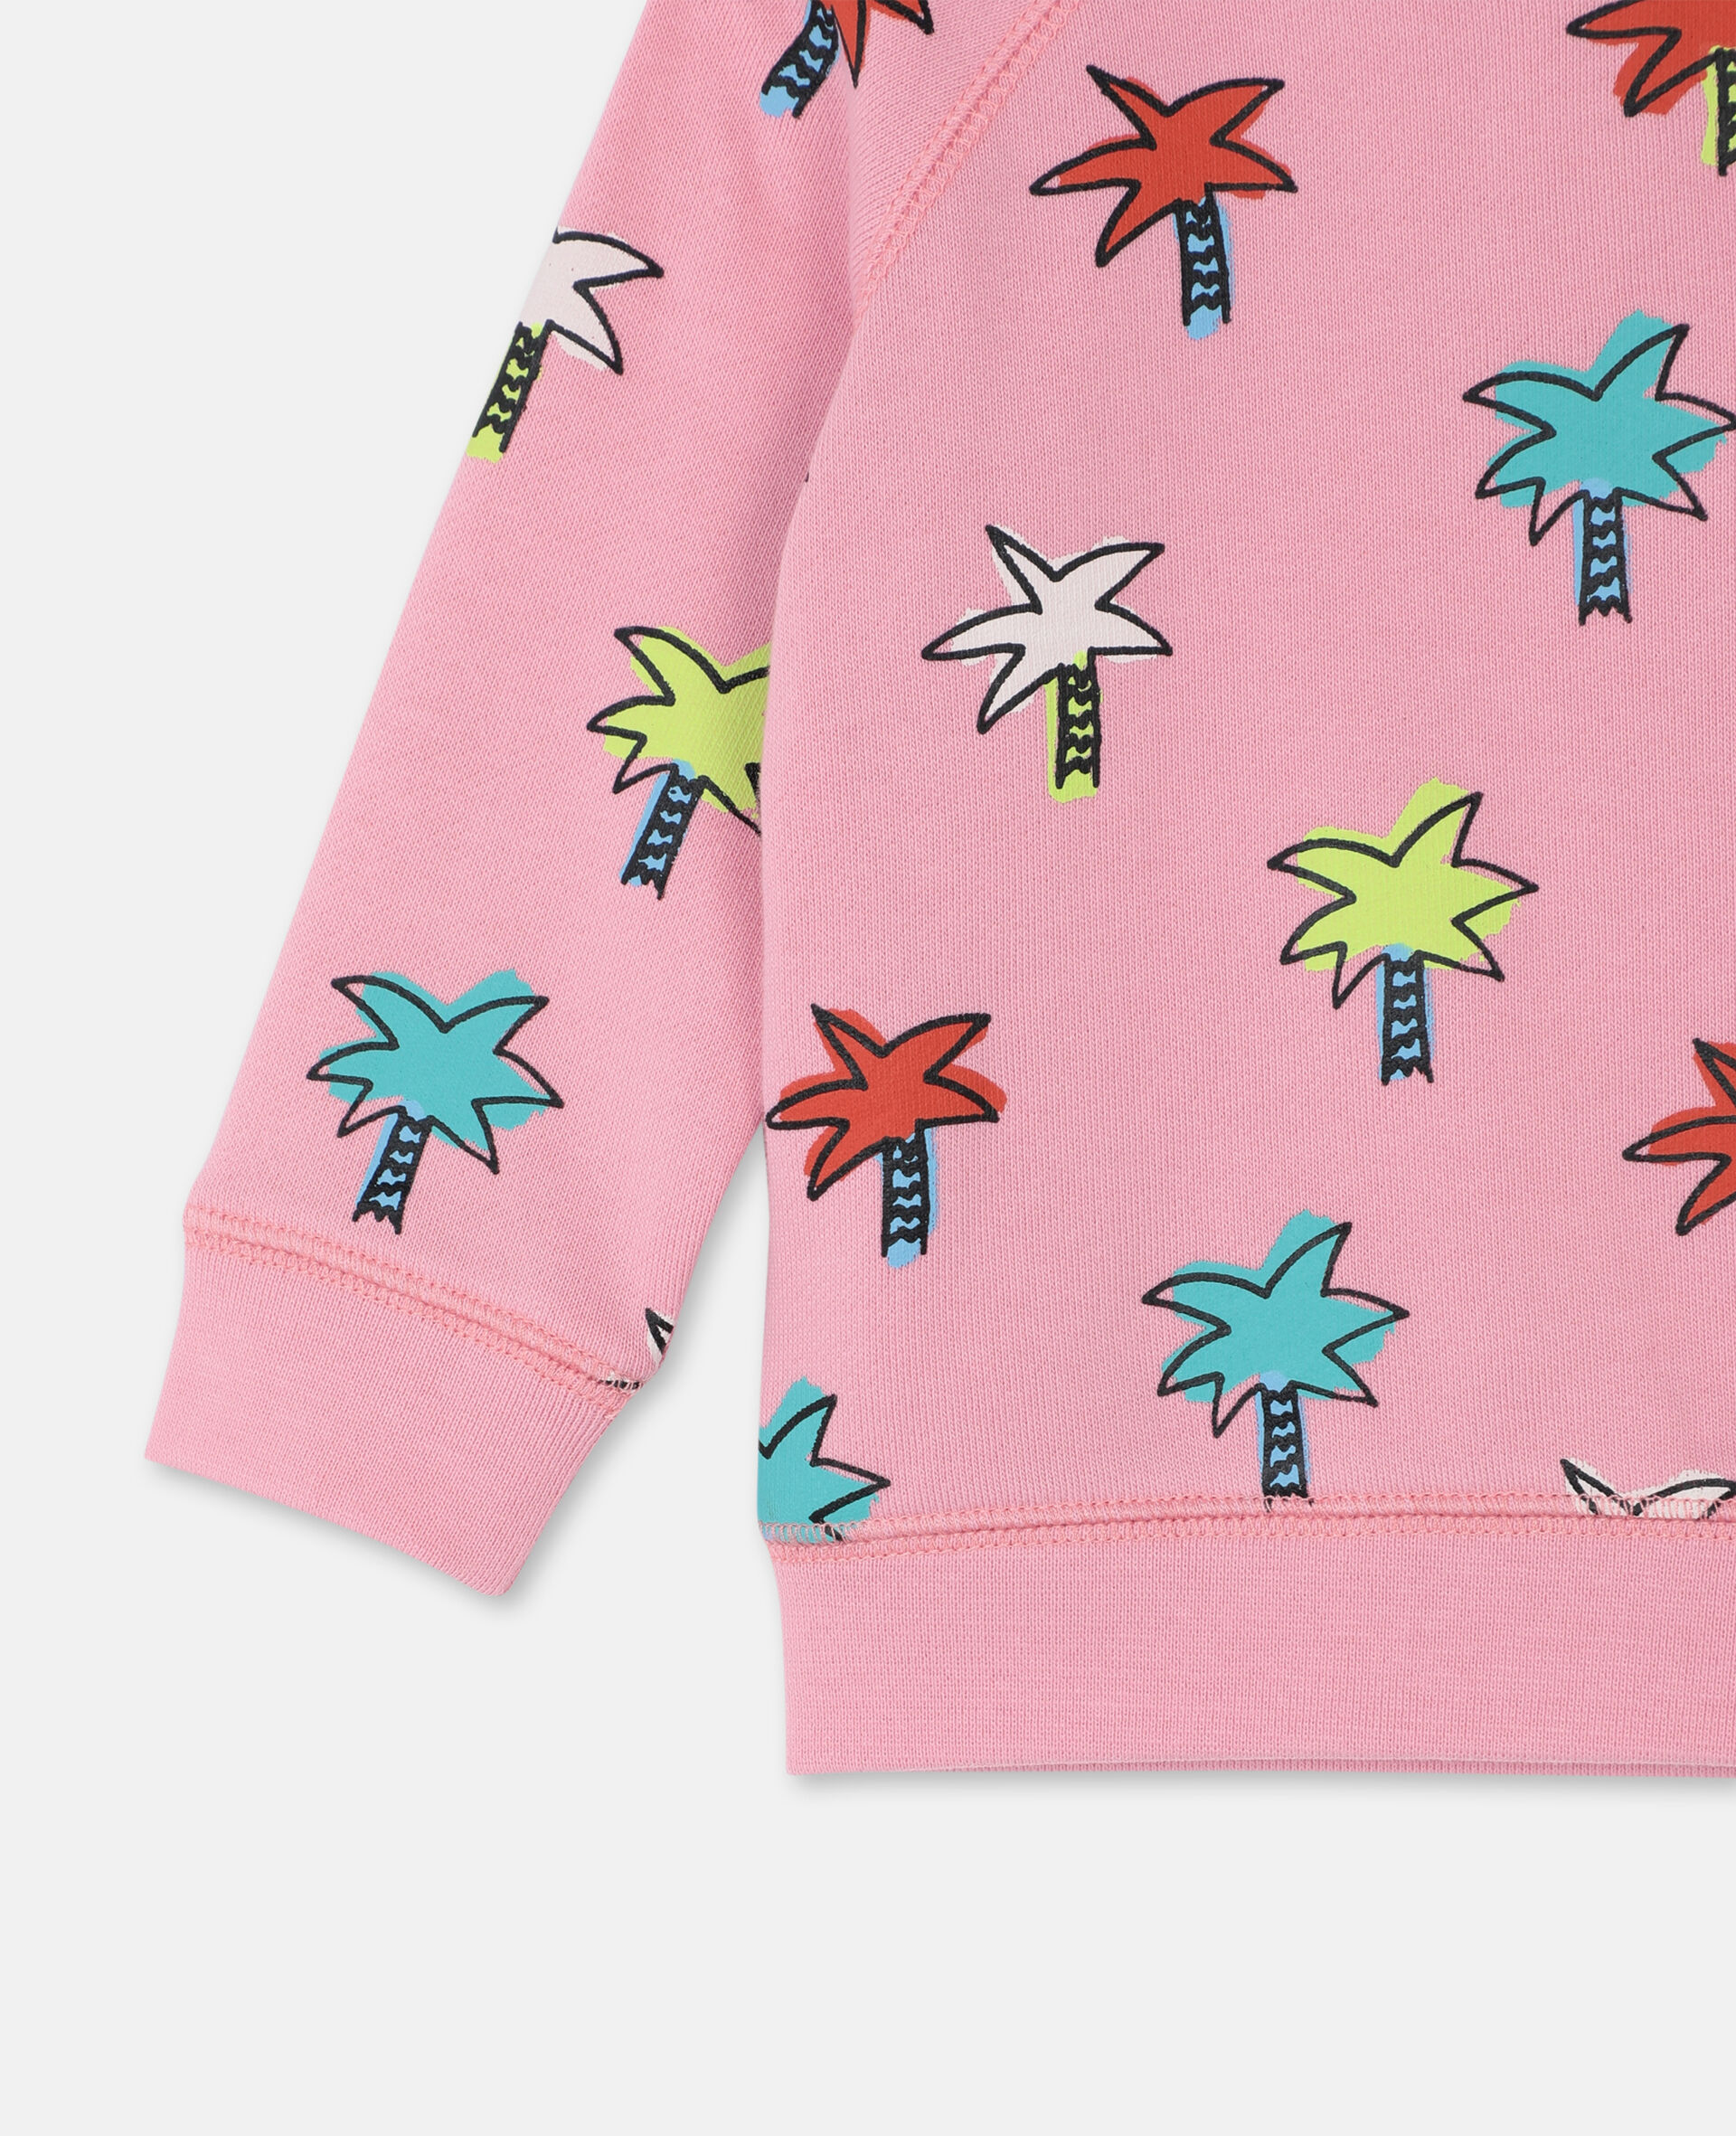 Doodly Palms Cotton Sweatshirt -Pink-large image number 2